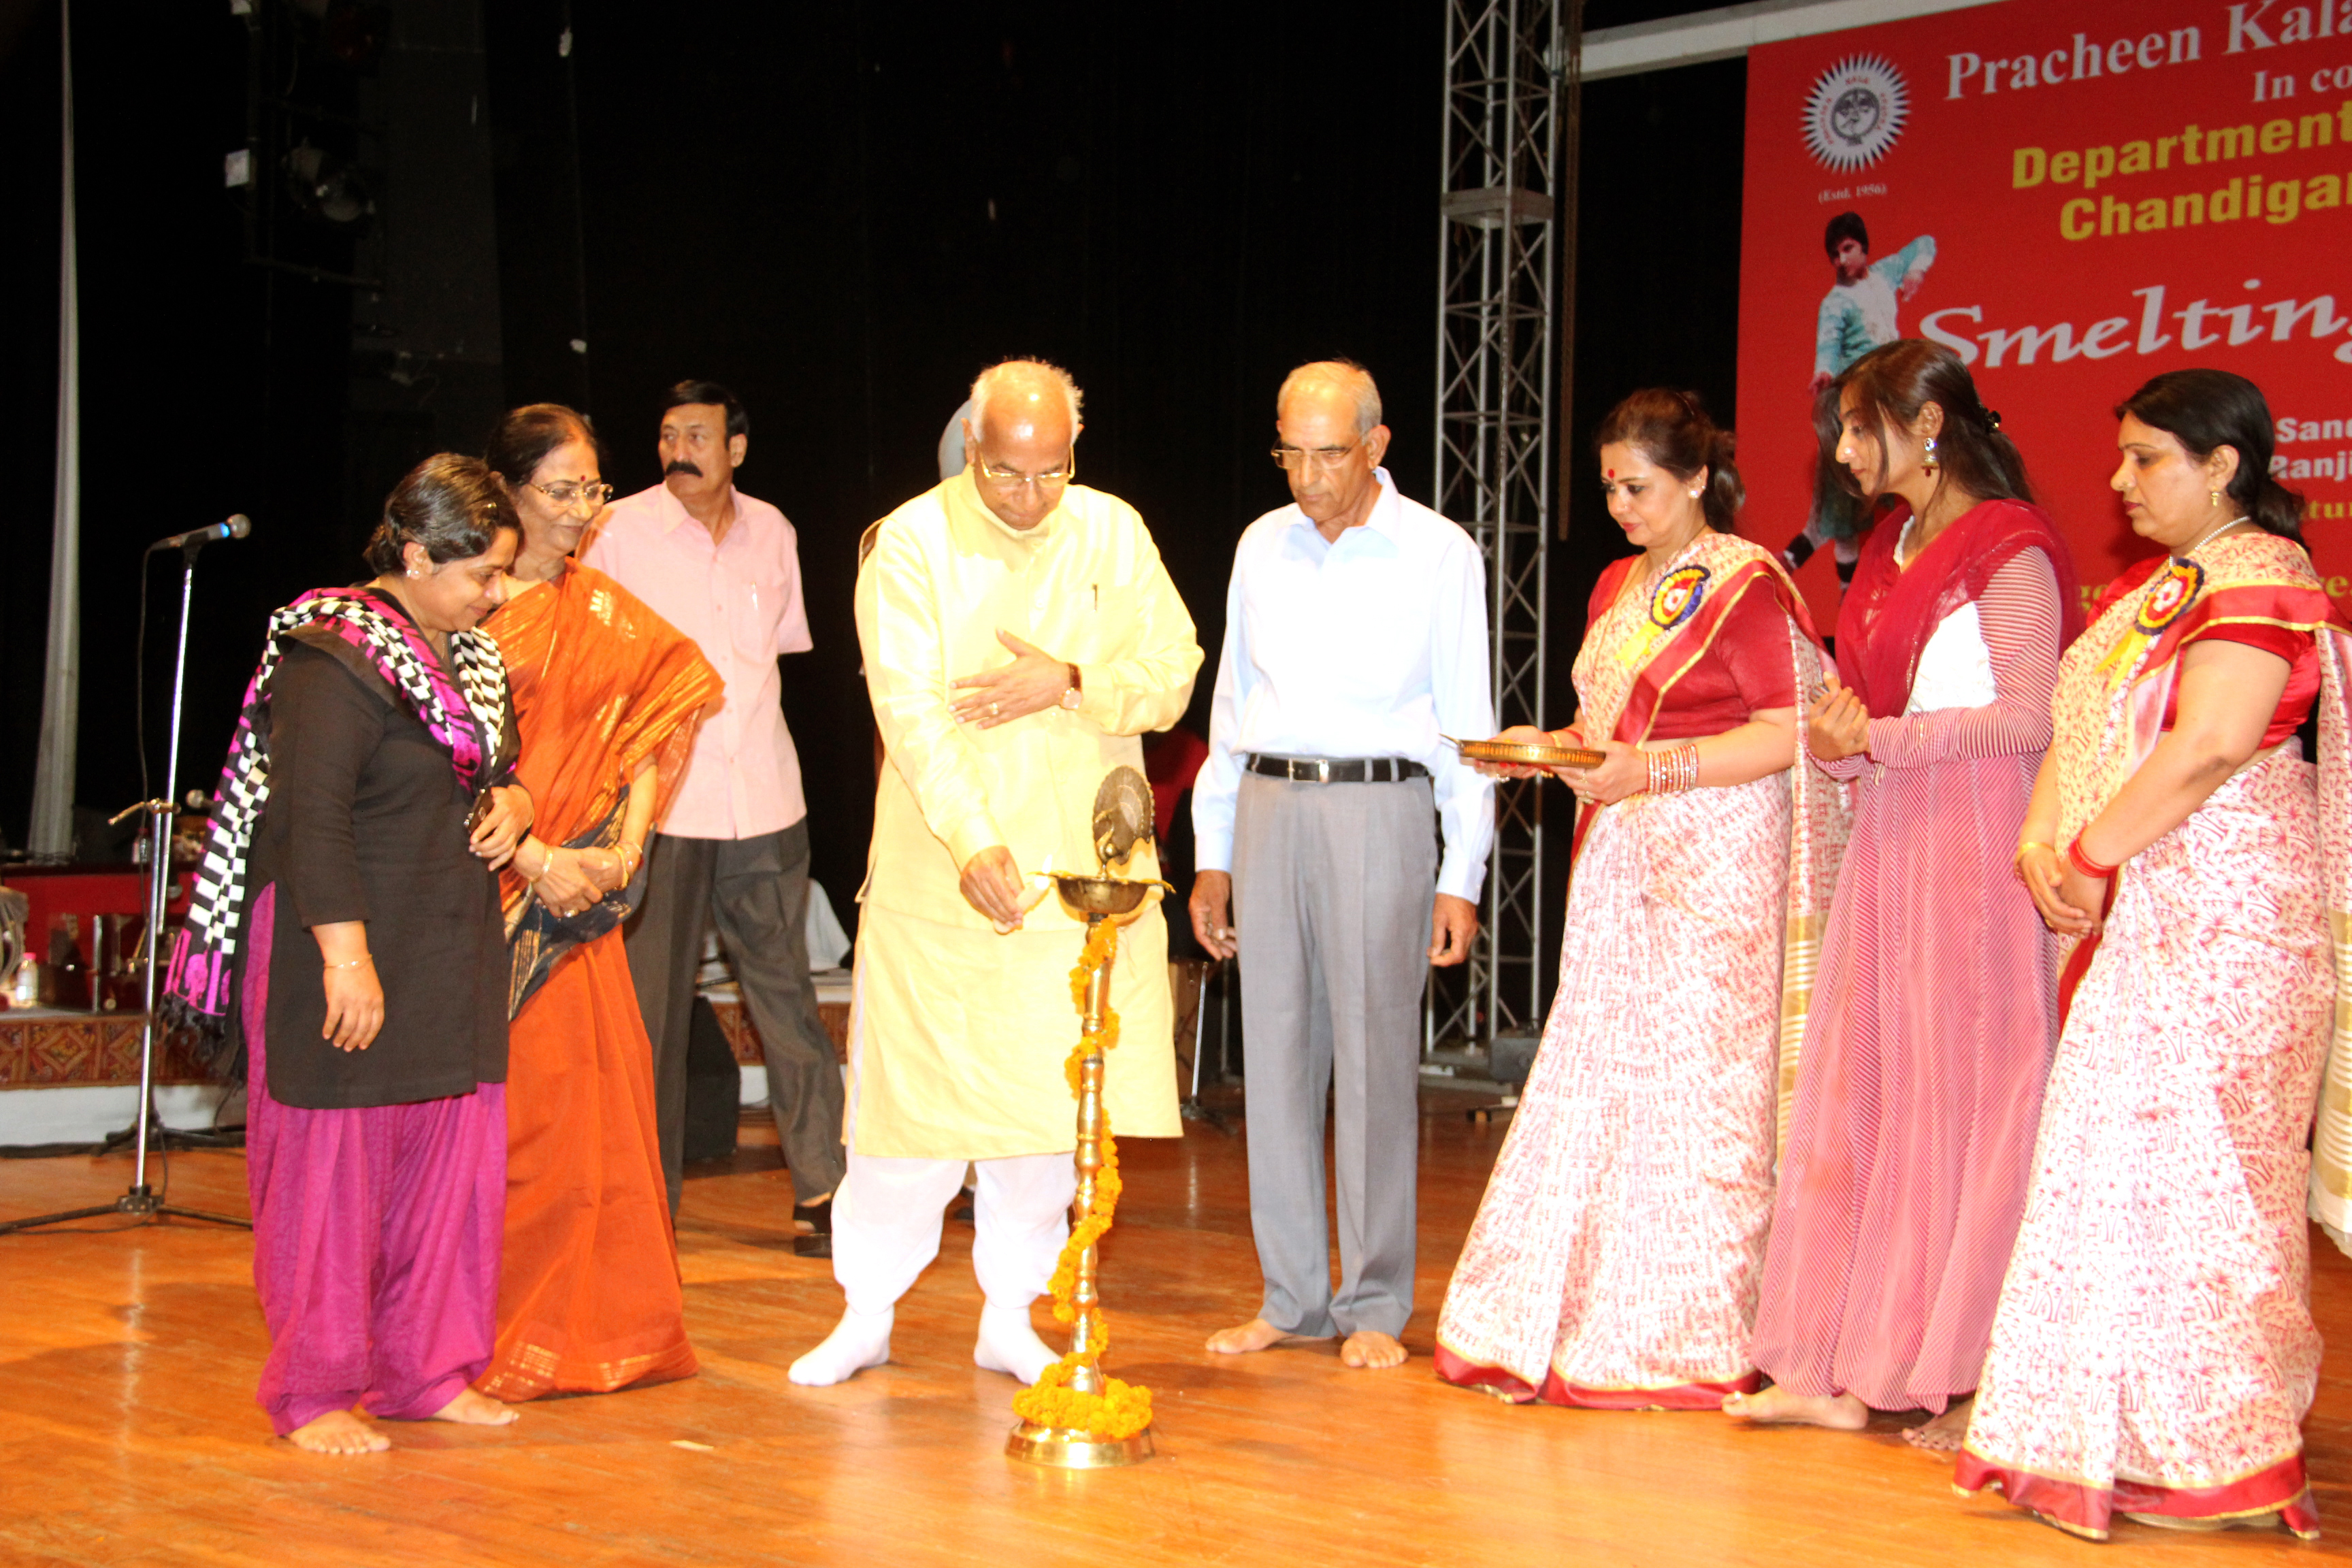 THE GOVERNOR OF HARYANA, PUNJAB AND ADMINISTRATOR, UT CHANDIGARH, PROF. KAPTAN SINGH SOLANKI LIGHTING THE LAMP TO MARK THE INAUGURATION OF MUSICAL NIGHT ORGANISED BY PRACHEEN KALA KENDRA AT TAGORE THEATRE ON 27.06.2015.